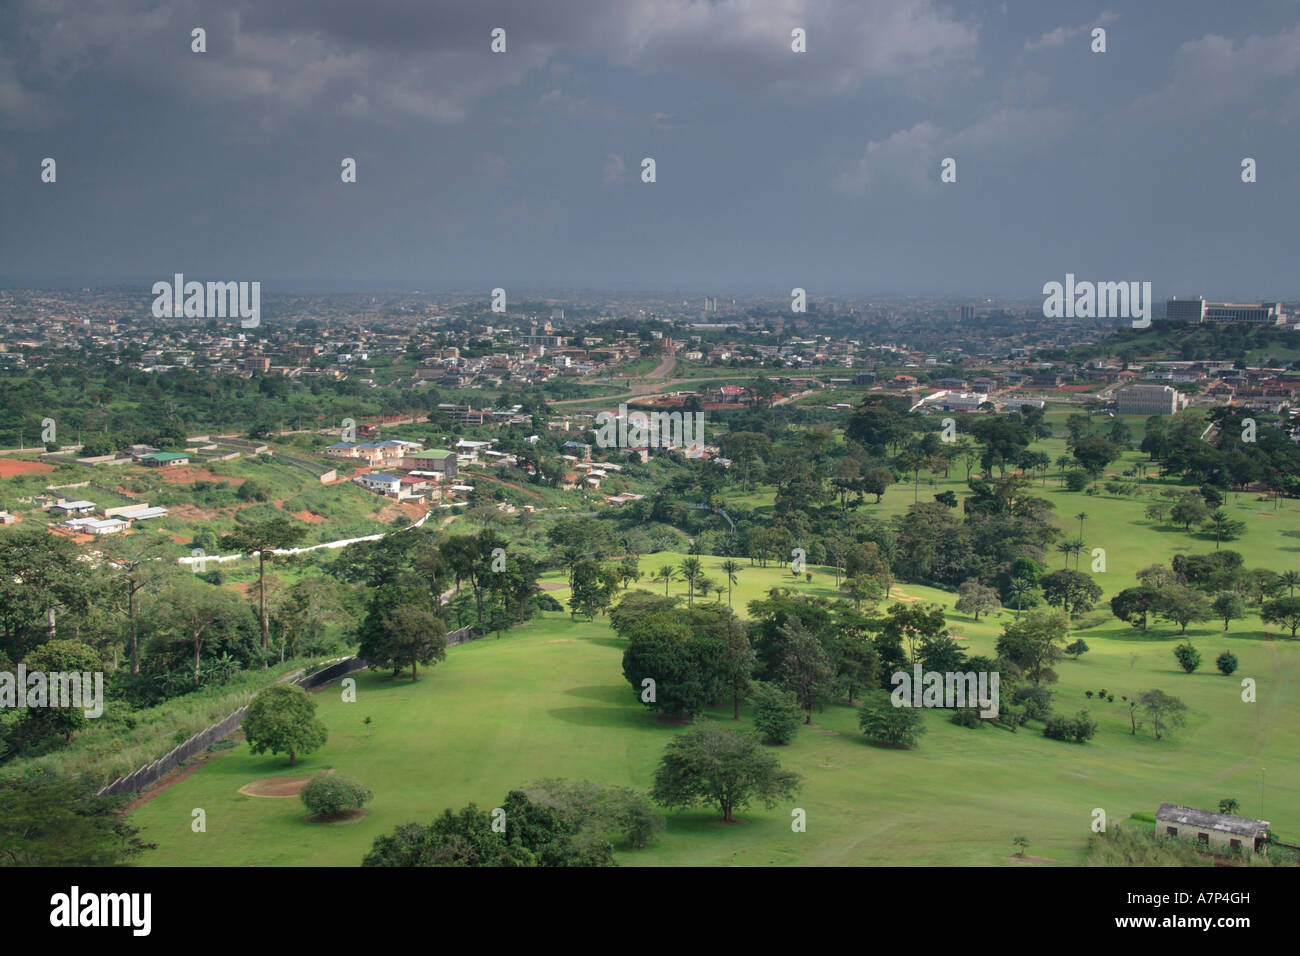 Yaounde is the capital of Cameroon 55